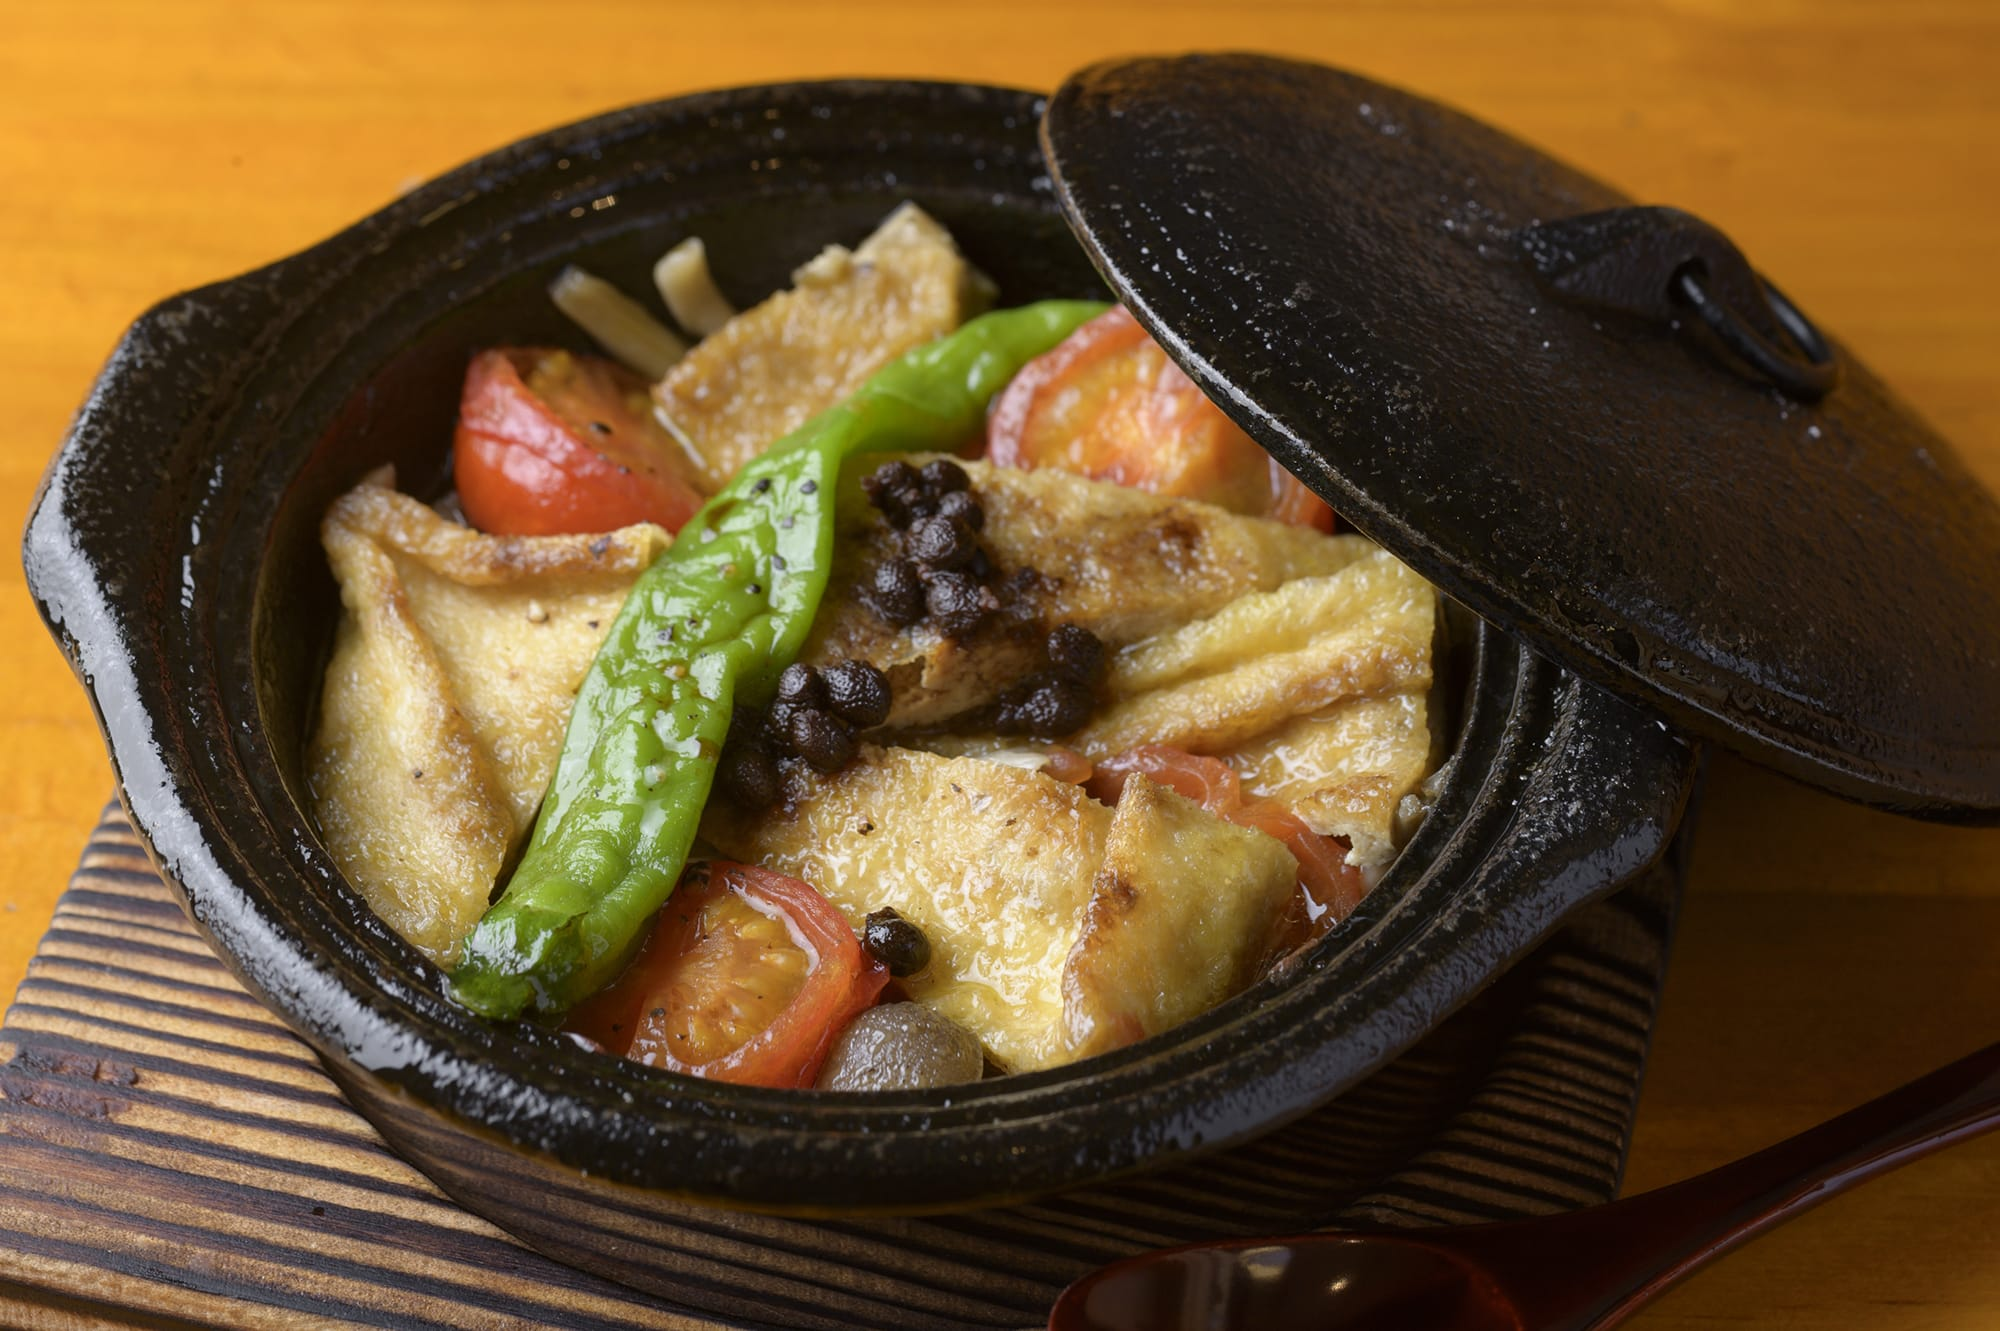 The vegetarian course features the Arima-sansho-yaki (grilled Arima sansho peppers) with abura-age (deep fried tofu) and mushrooms instead of the fish and vegetable dish.